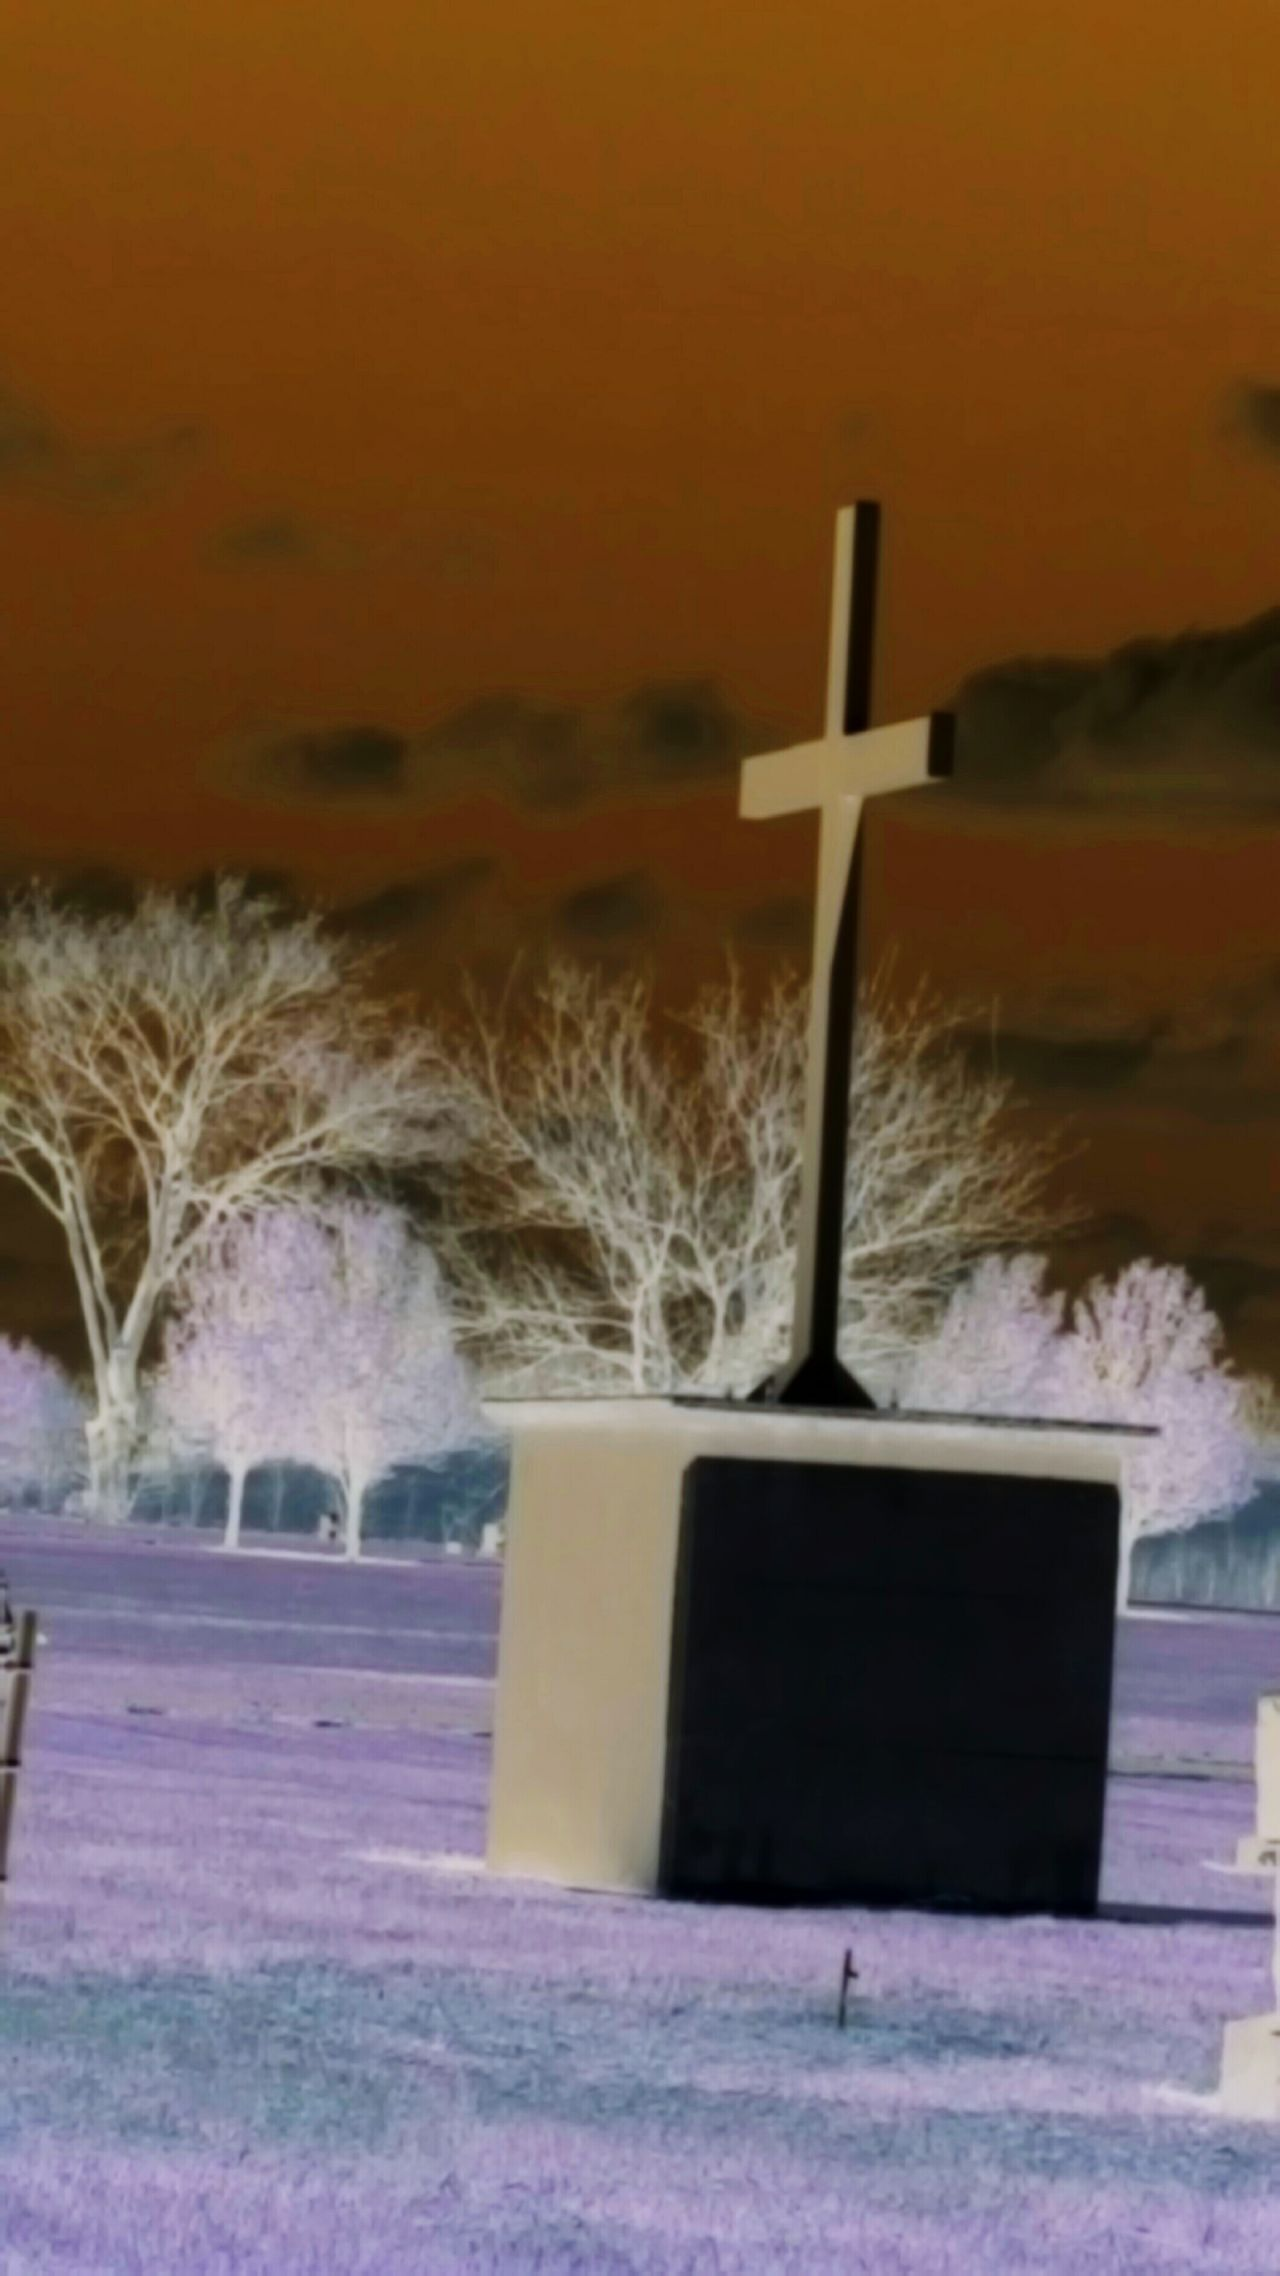 Negative Effect Mypointofview Showcase April Artistic Springtime April 2016 Cemetary Cemetery Photography Cemetery_shots Cemeteryscape Things I Like Lamdscapes With Whitewall Negative Art Landscape_Collection April Showcase Kansas Cross